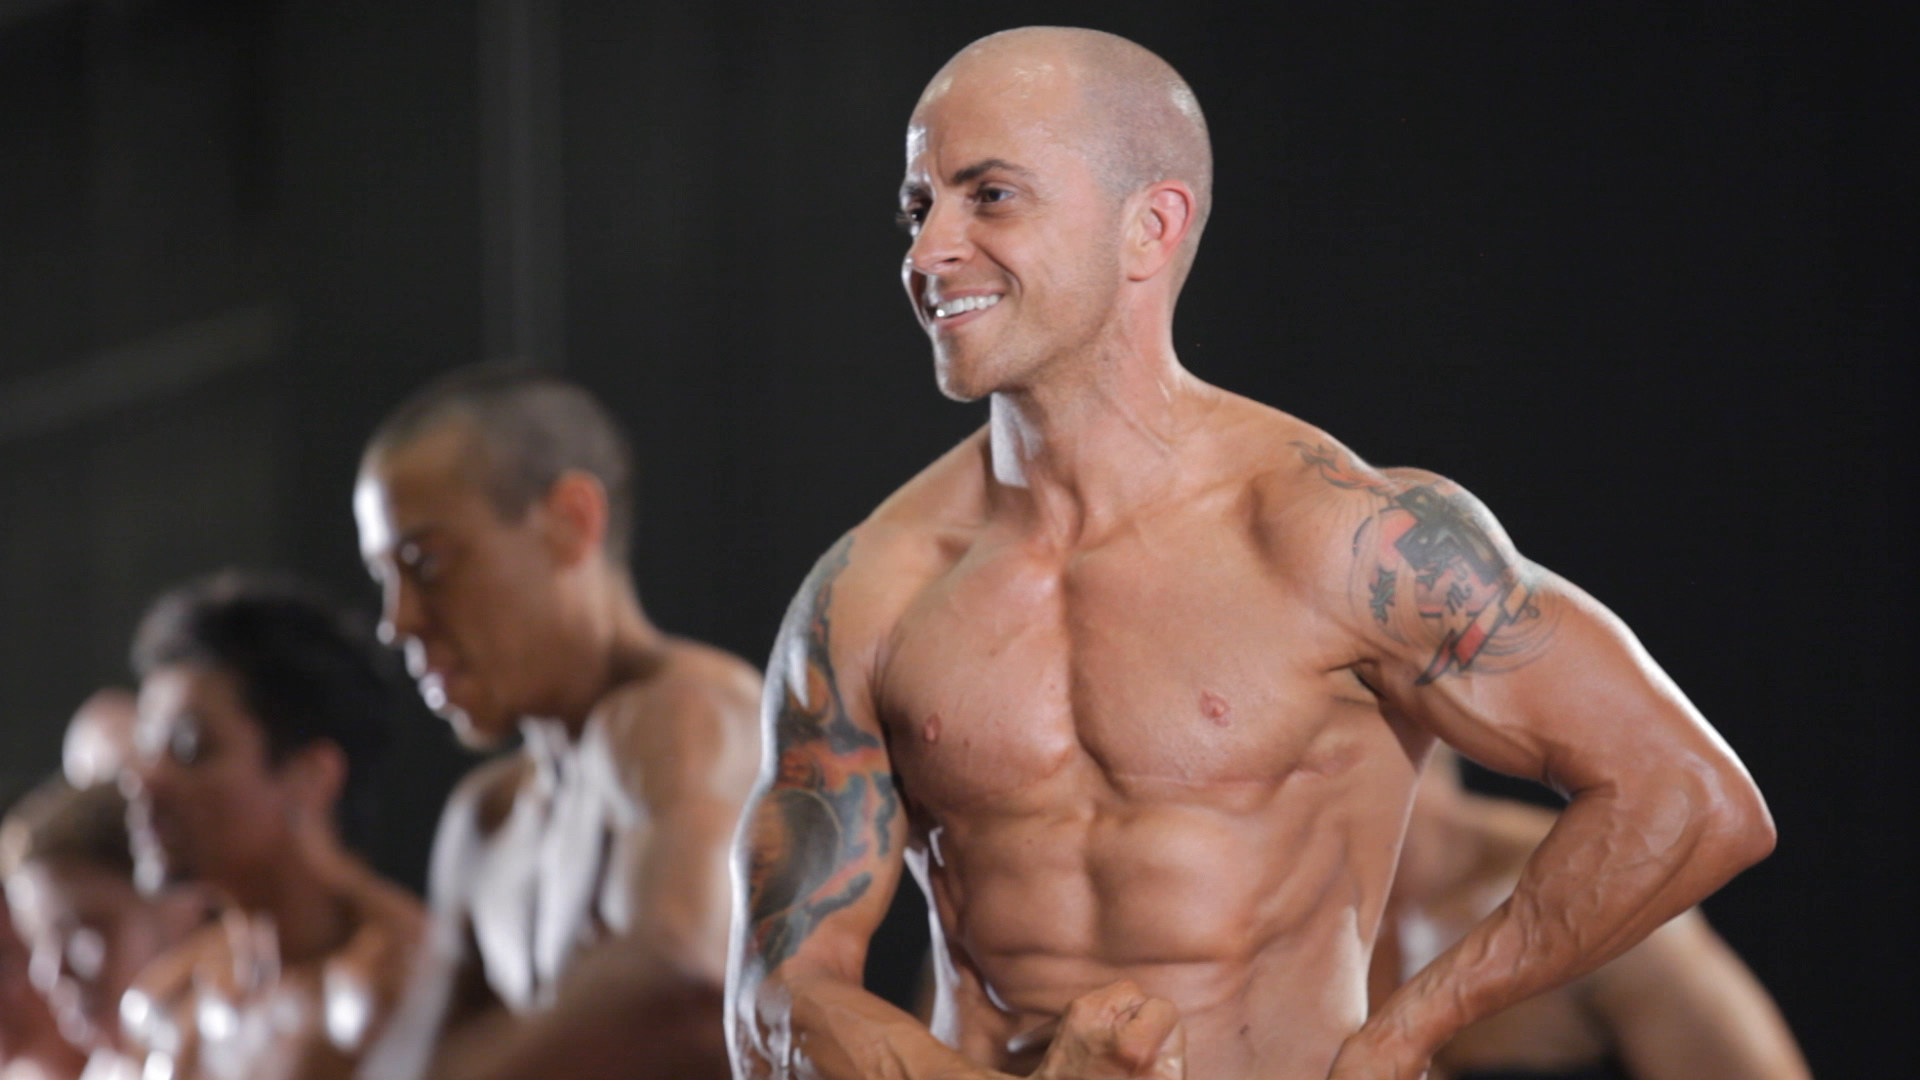 Mason, a trans man, competes in a bodybuilding competition